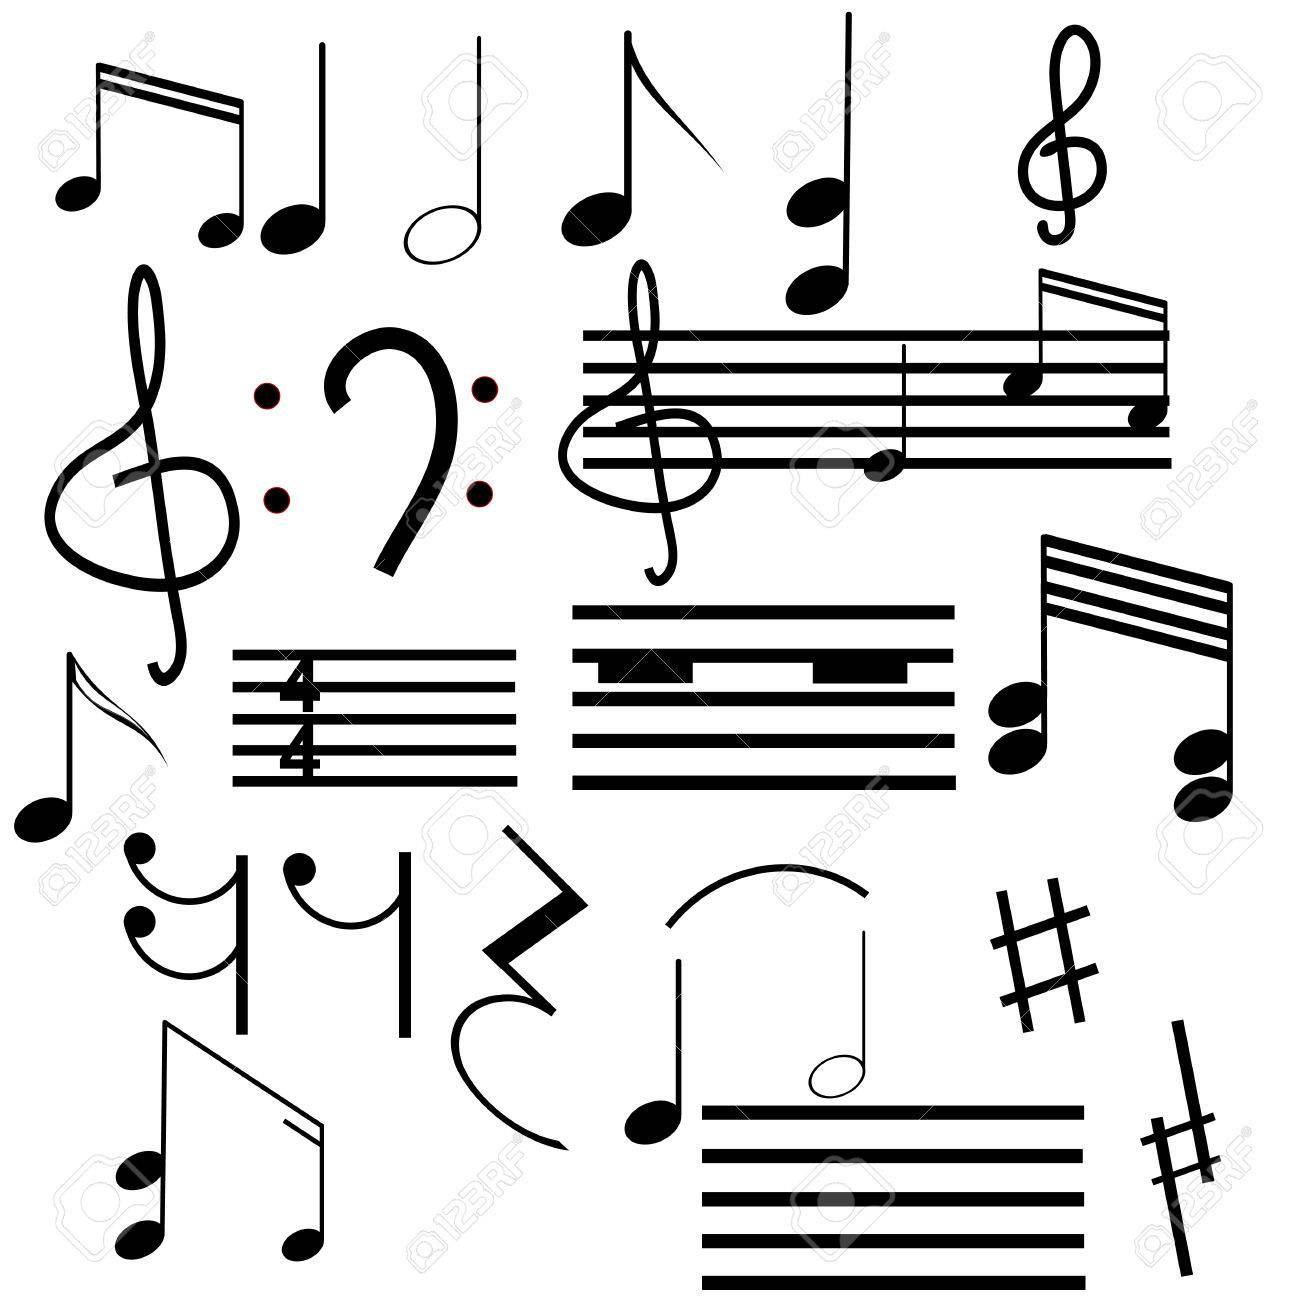 Collection of musical symbols royalty free cliparts vectors and collection of musical symbols stock vector 6993868 biocorpaavc Images